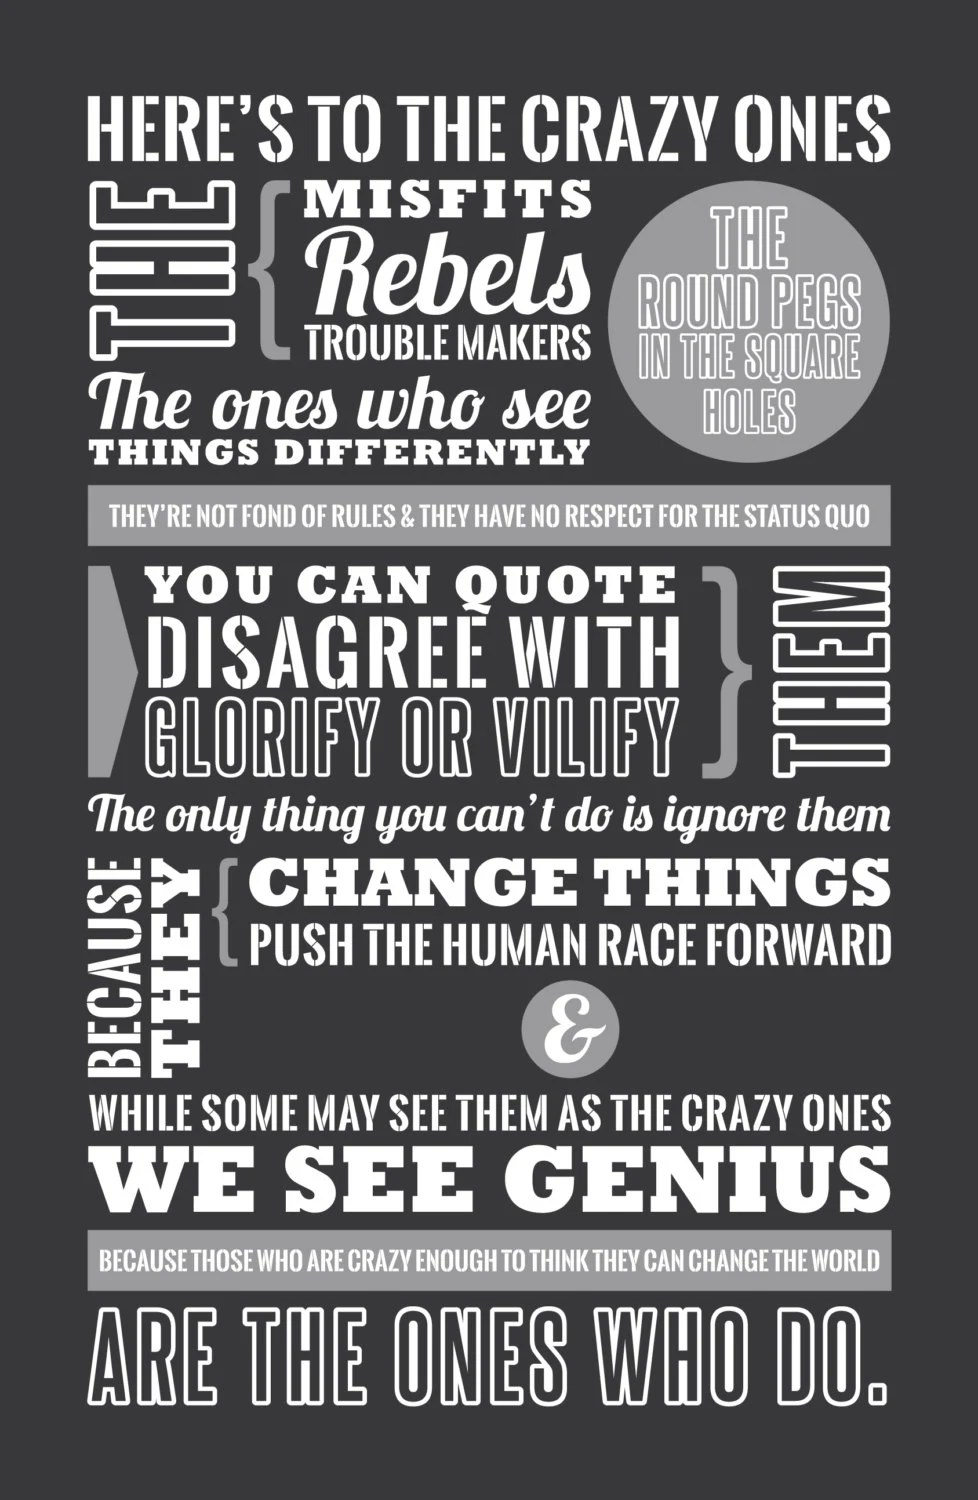 Steve Jobs Quotes Your Time Is Limited Wallpaper Steve Jobs Here S To The Crazy Ones Steve Jobs By